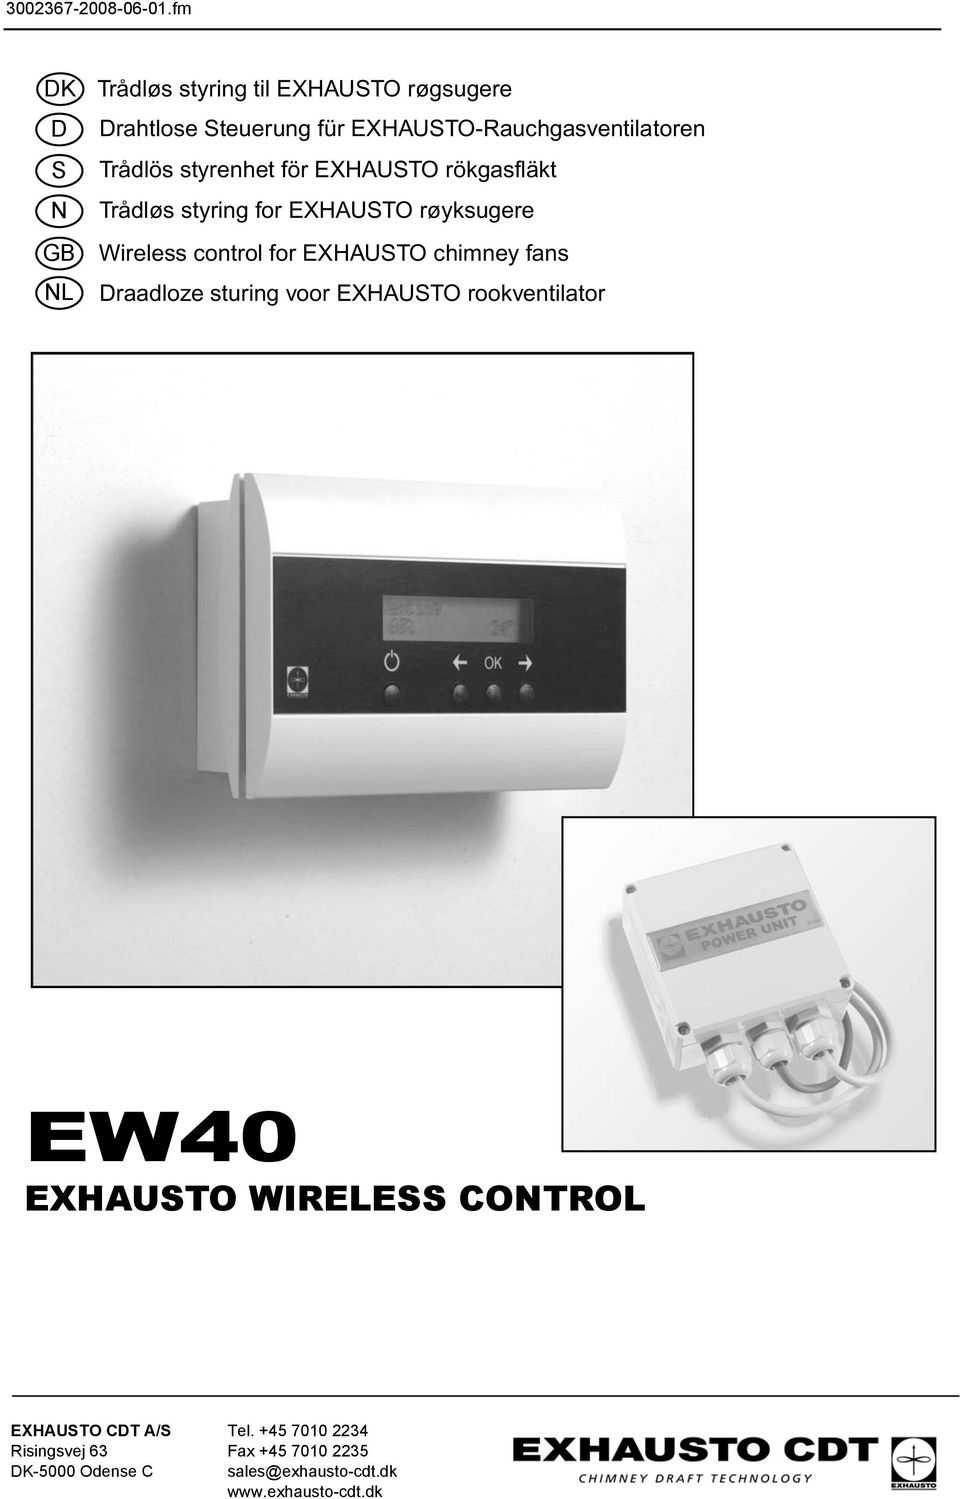 EXHAUSTO chimney fans Draadloze sturing voor EXHAUSTO rookventilator EW40 EXHAUSTO WIRELESS CONTROL EXHAUSTO